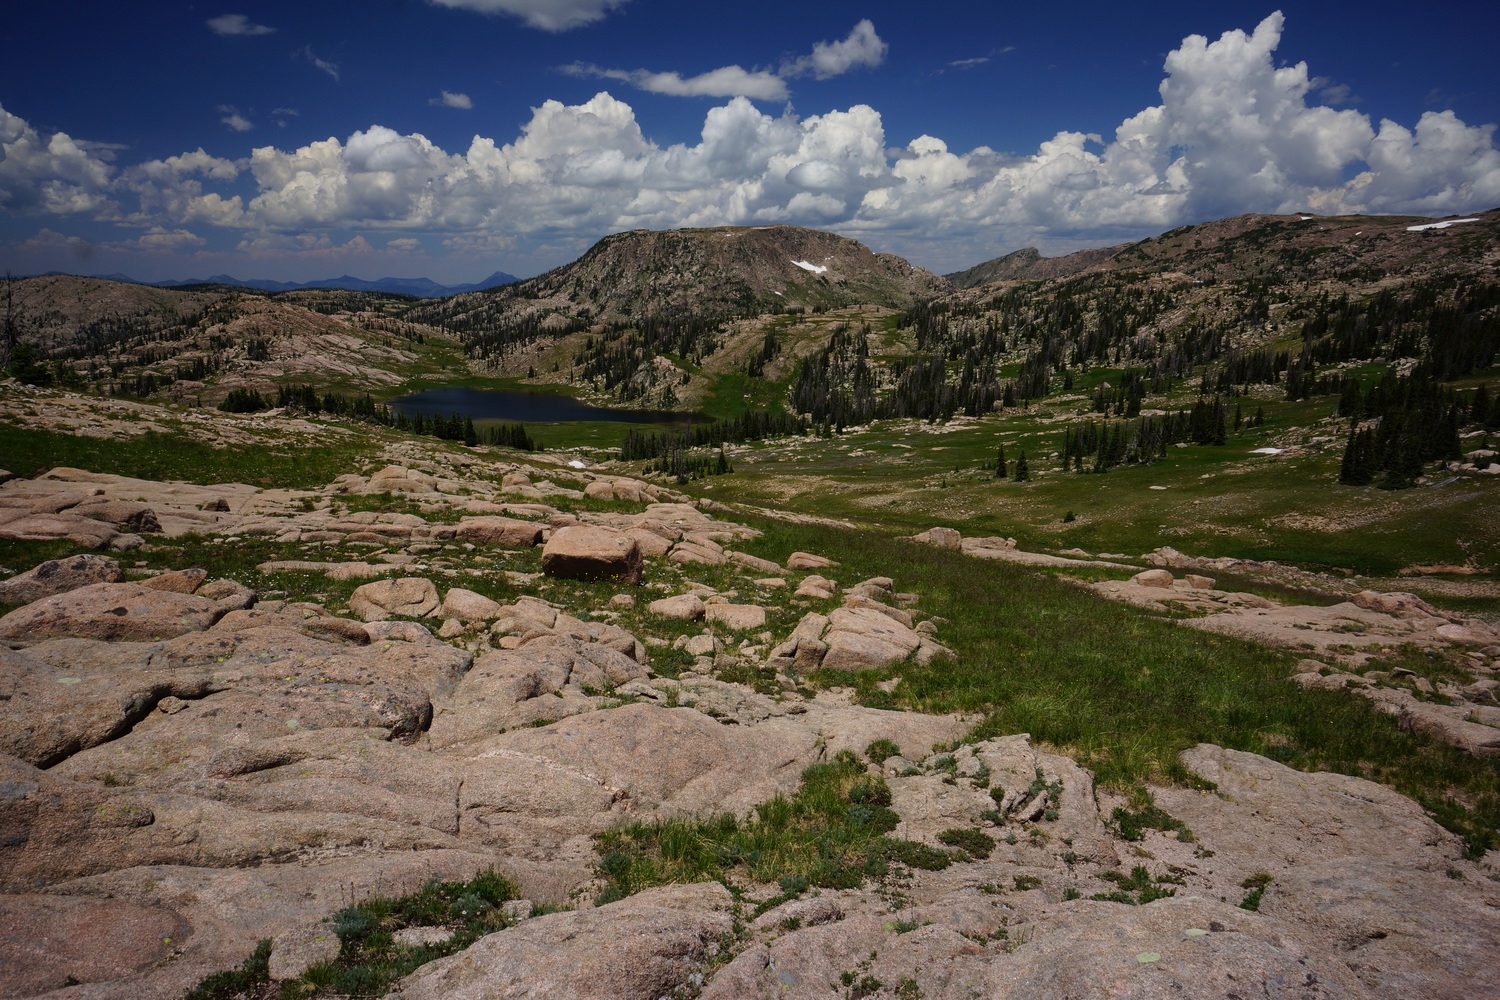 grand lake to steamboat springs hike on the continental divide trail 2018